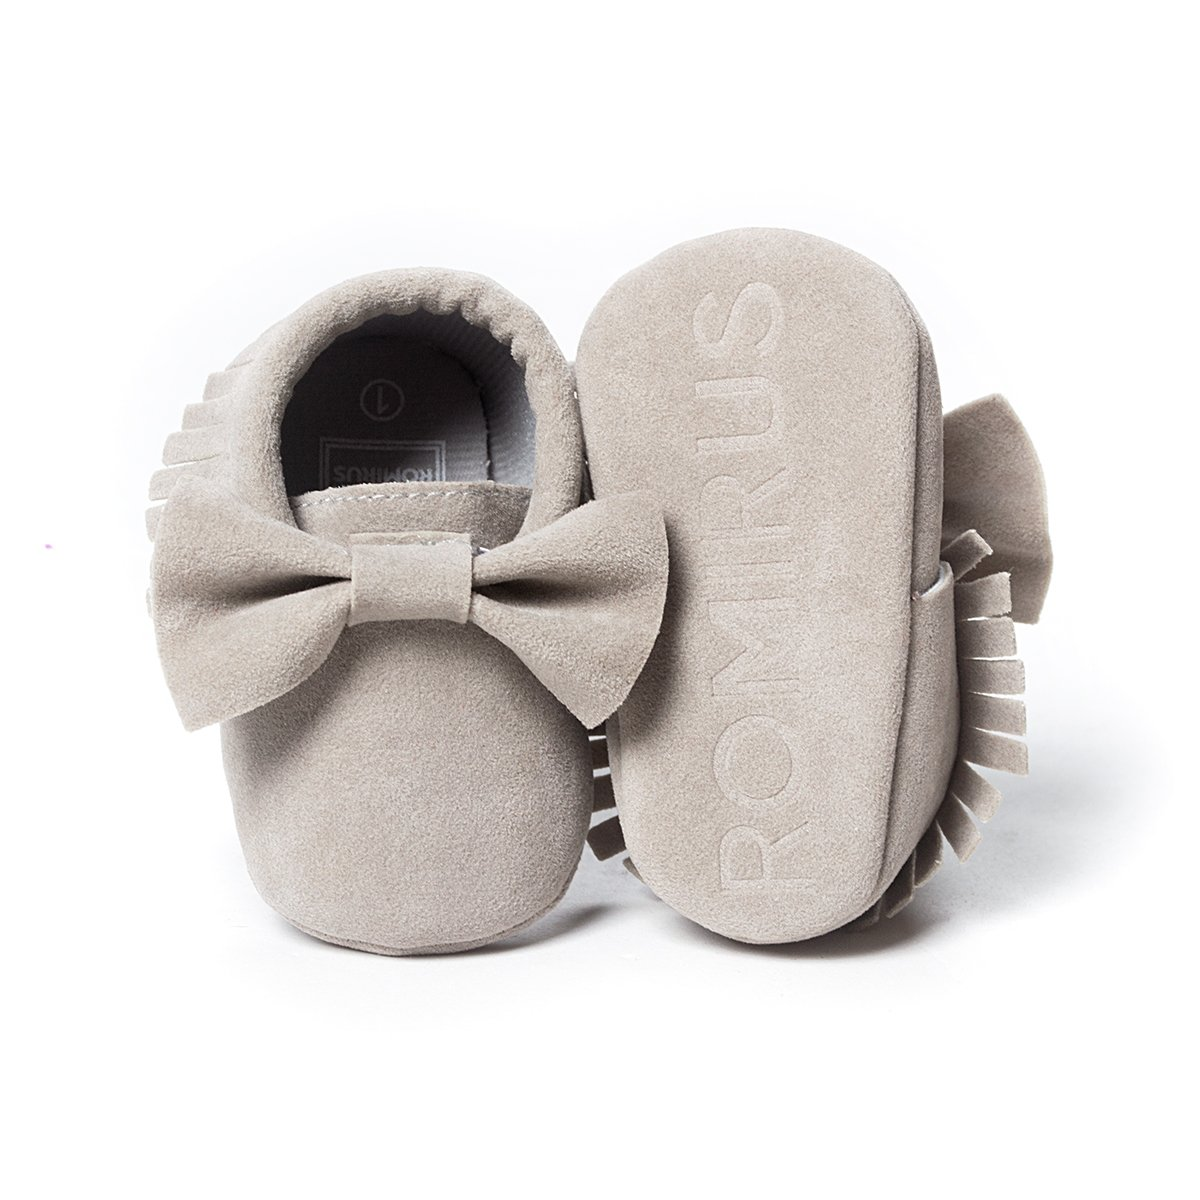 LIVEBOX Infant Baby Girls and Boys Premium Soft Sole Moccasins Tassels Prewalker Anti-Slip Toddler Shoes (S: 0~6 Months, Bow-Light Grey) by LIVEBOX (Image #4)